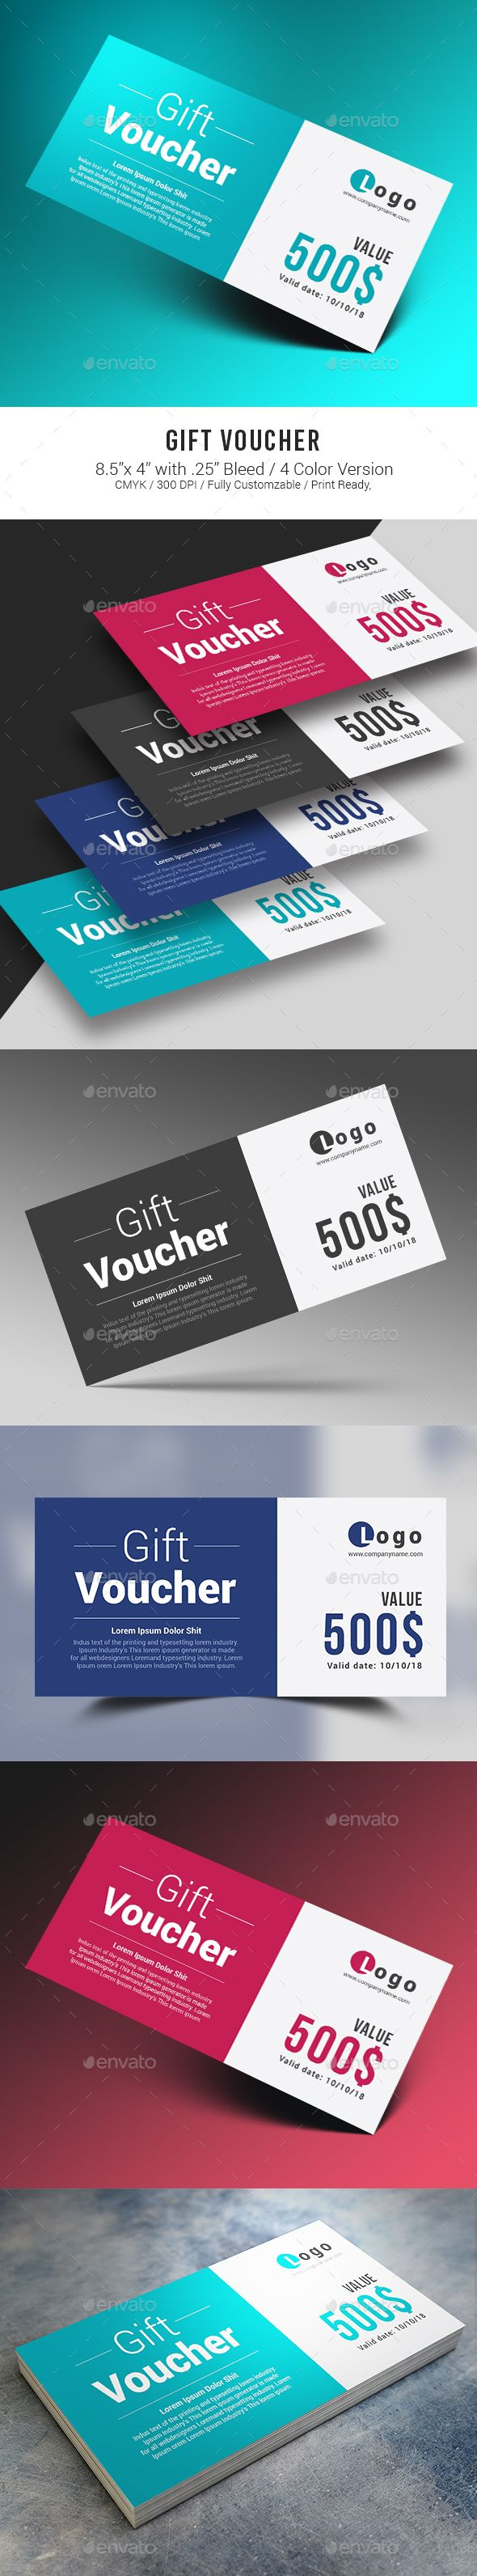 15 best gift voucher images on Pinterest | Gift cards, Gift ...